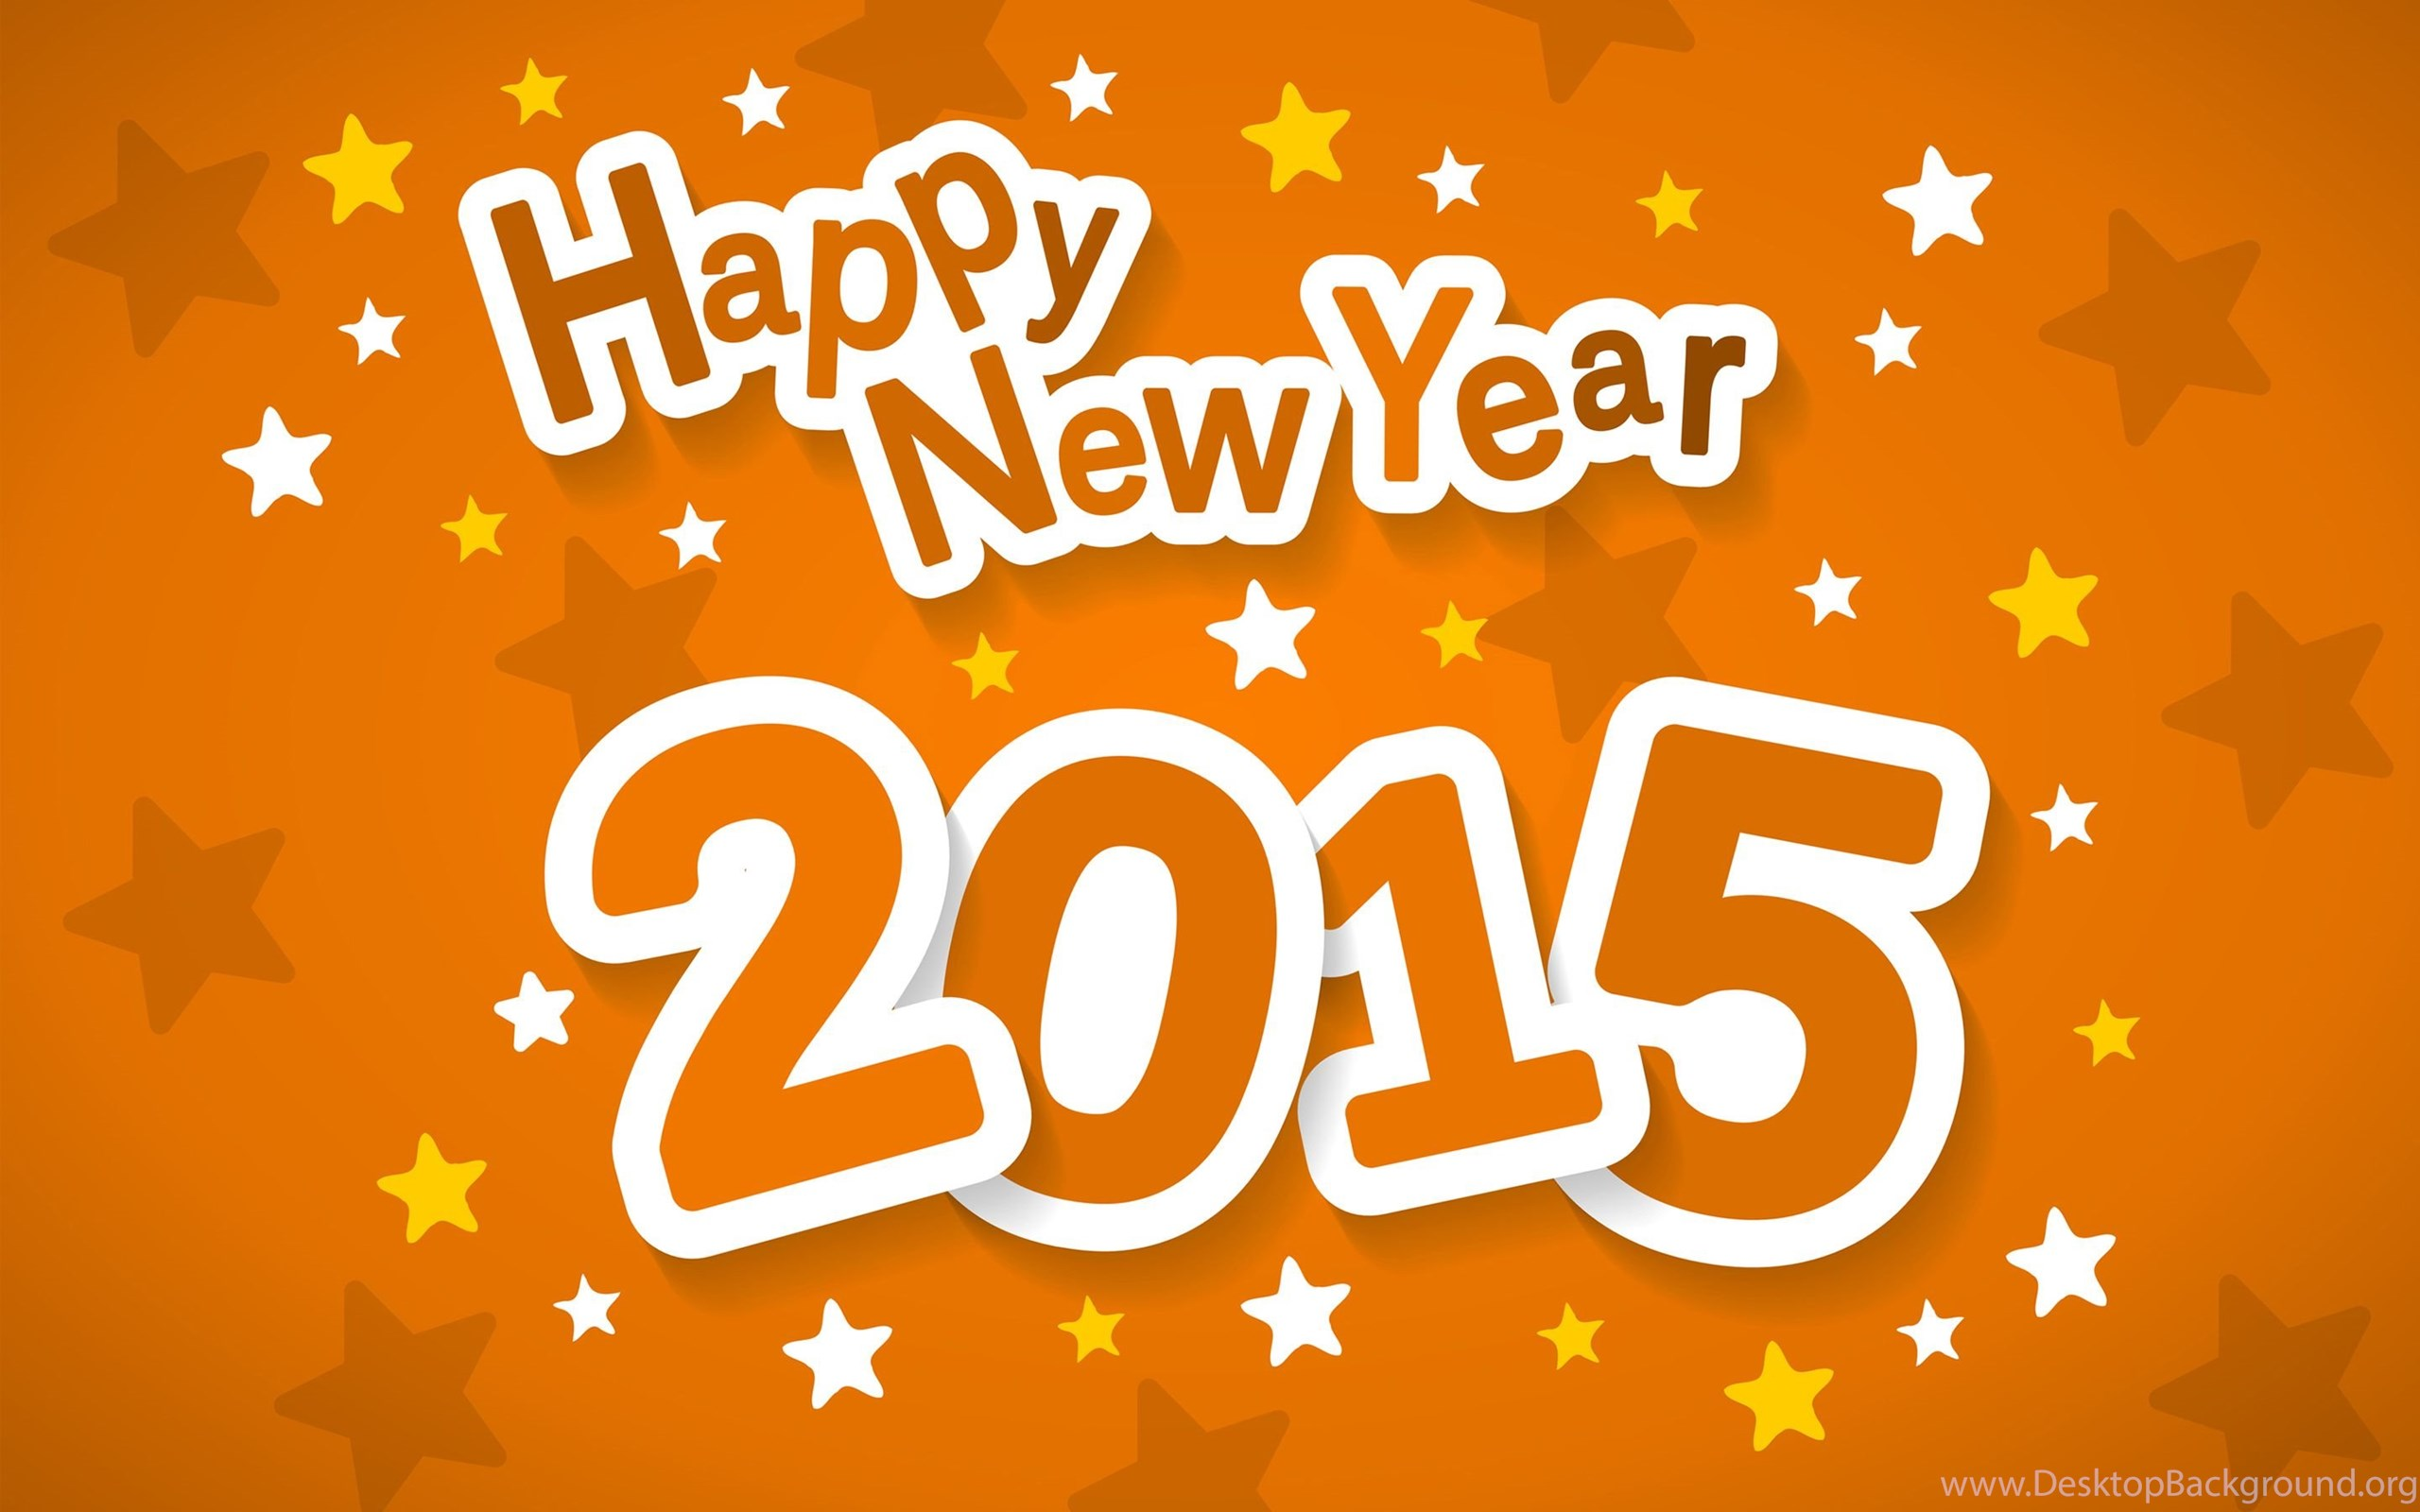 3d Happy New Year 2016 Wallpapers Hd Download Free For Iphone